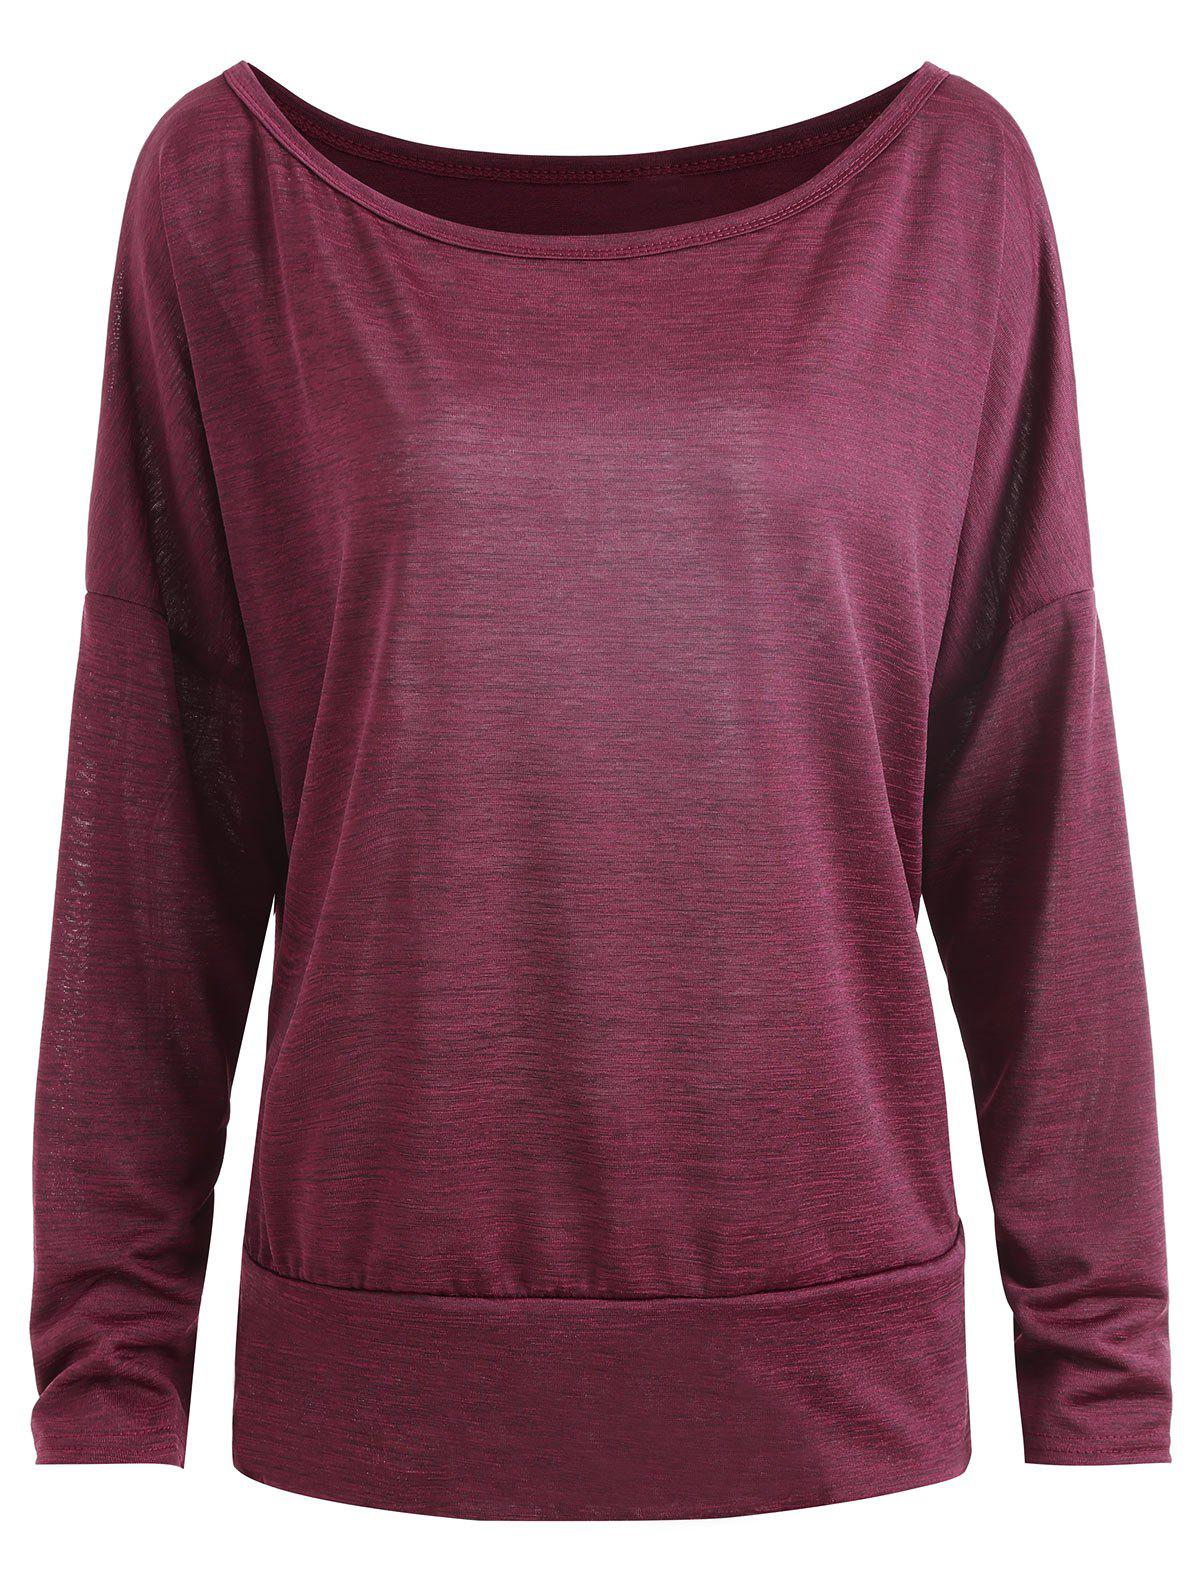 Drop Shoulder Scoop Neck Plus Size T-shirt - WINE RED 3XL